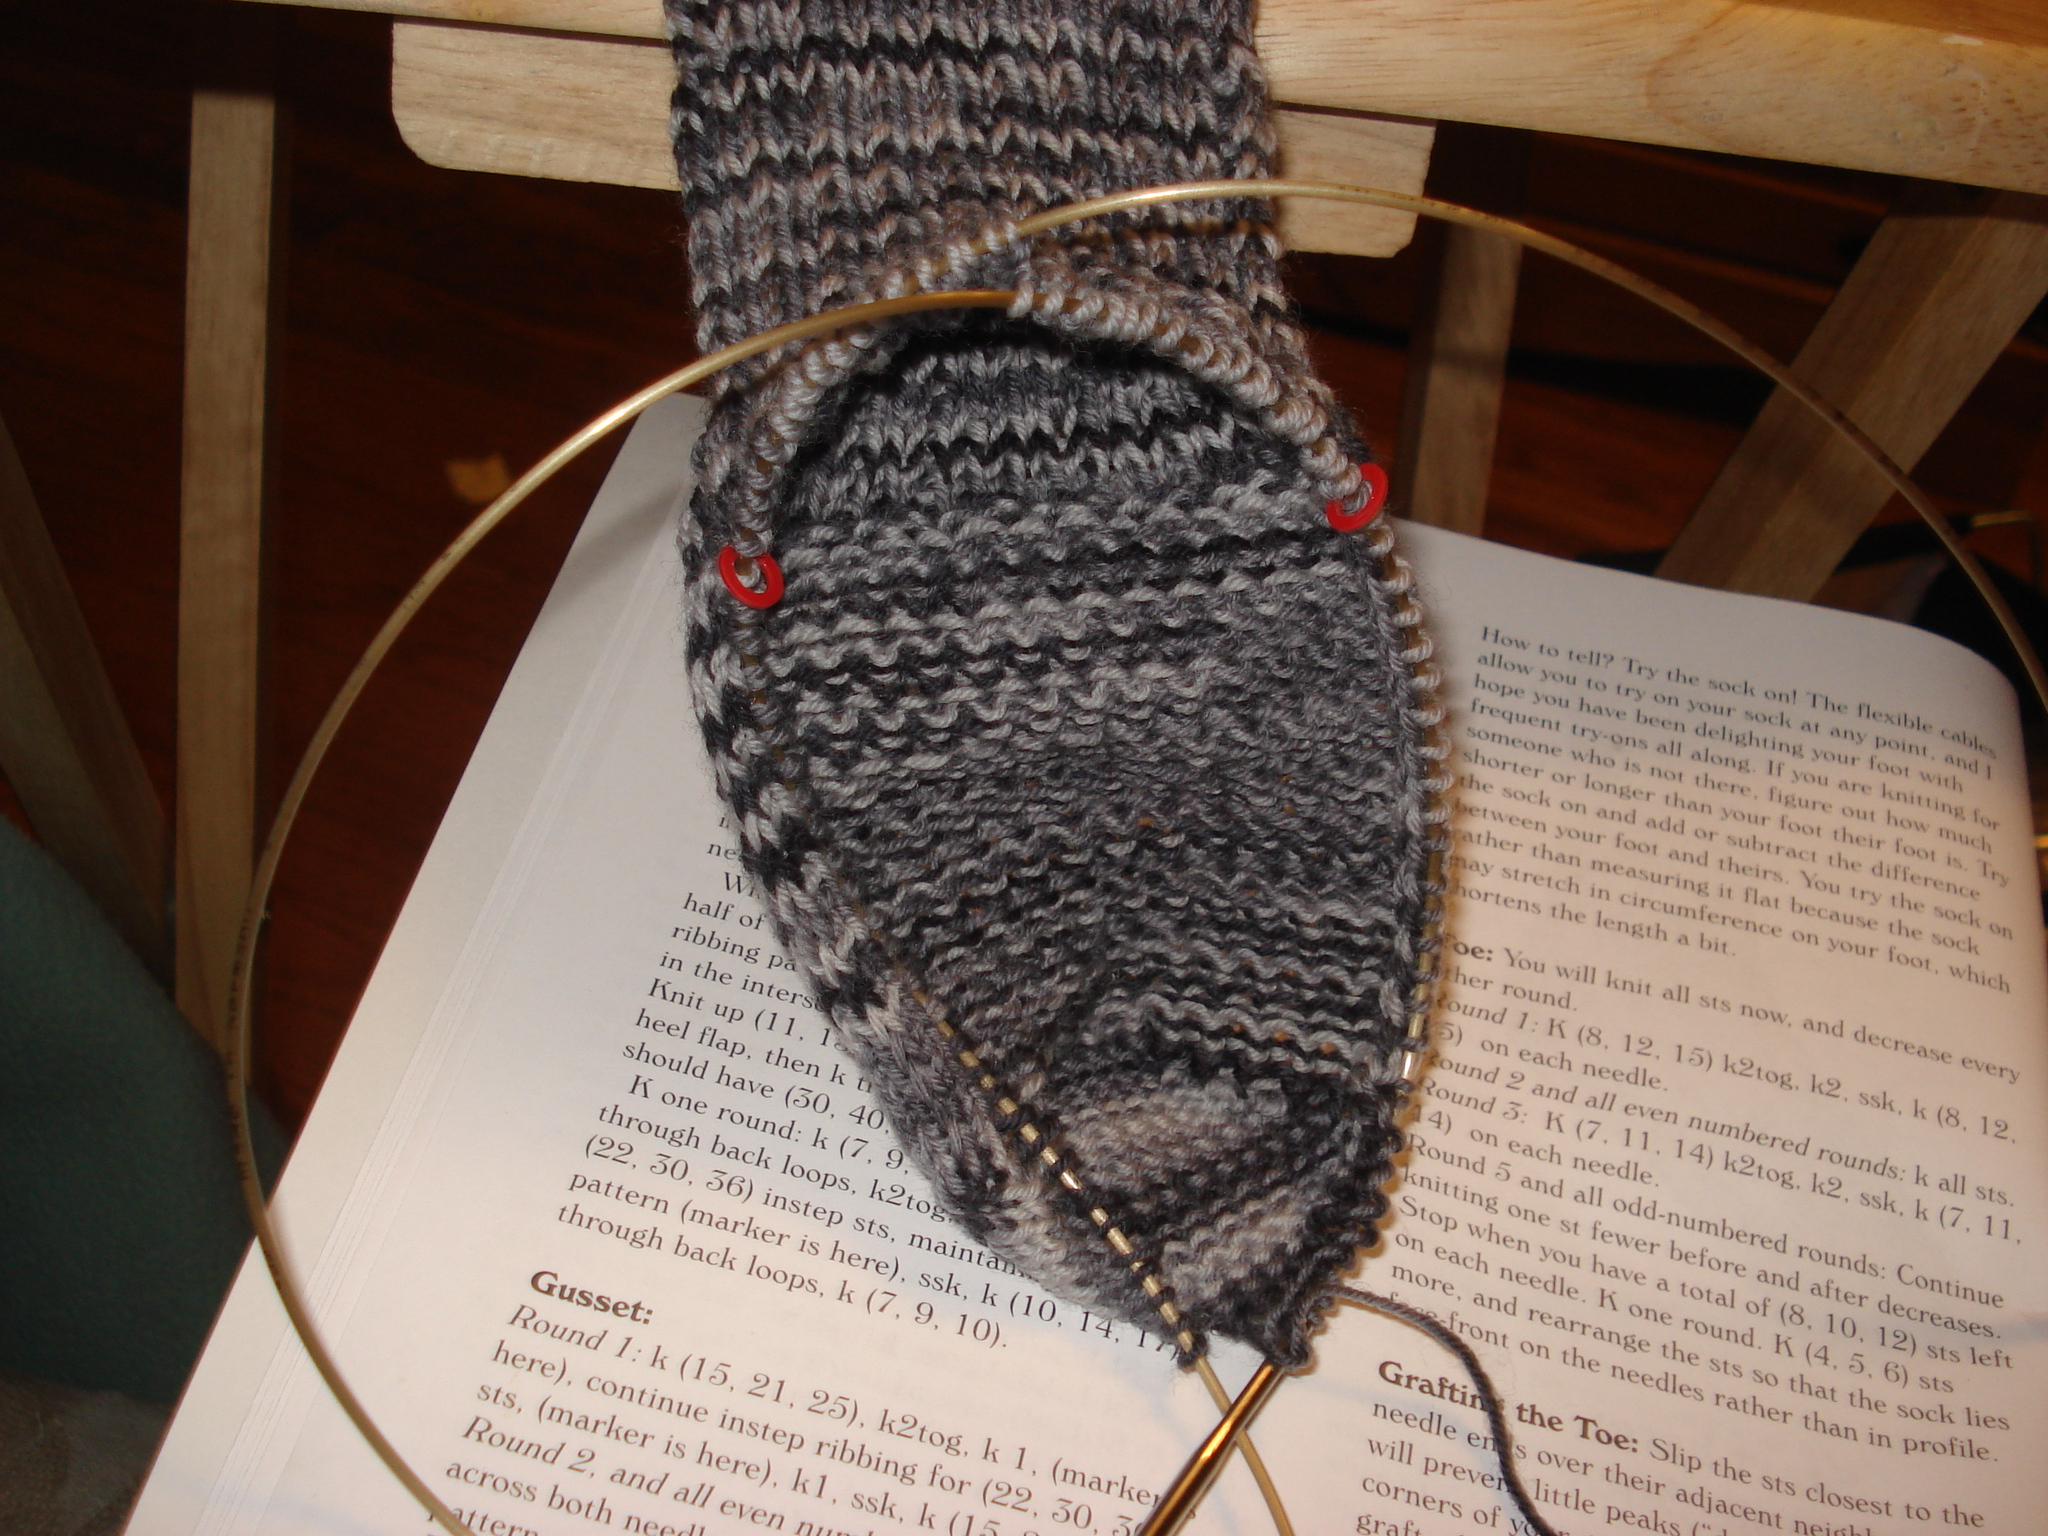 Gusset all knitted up